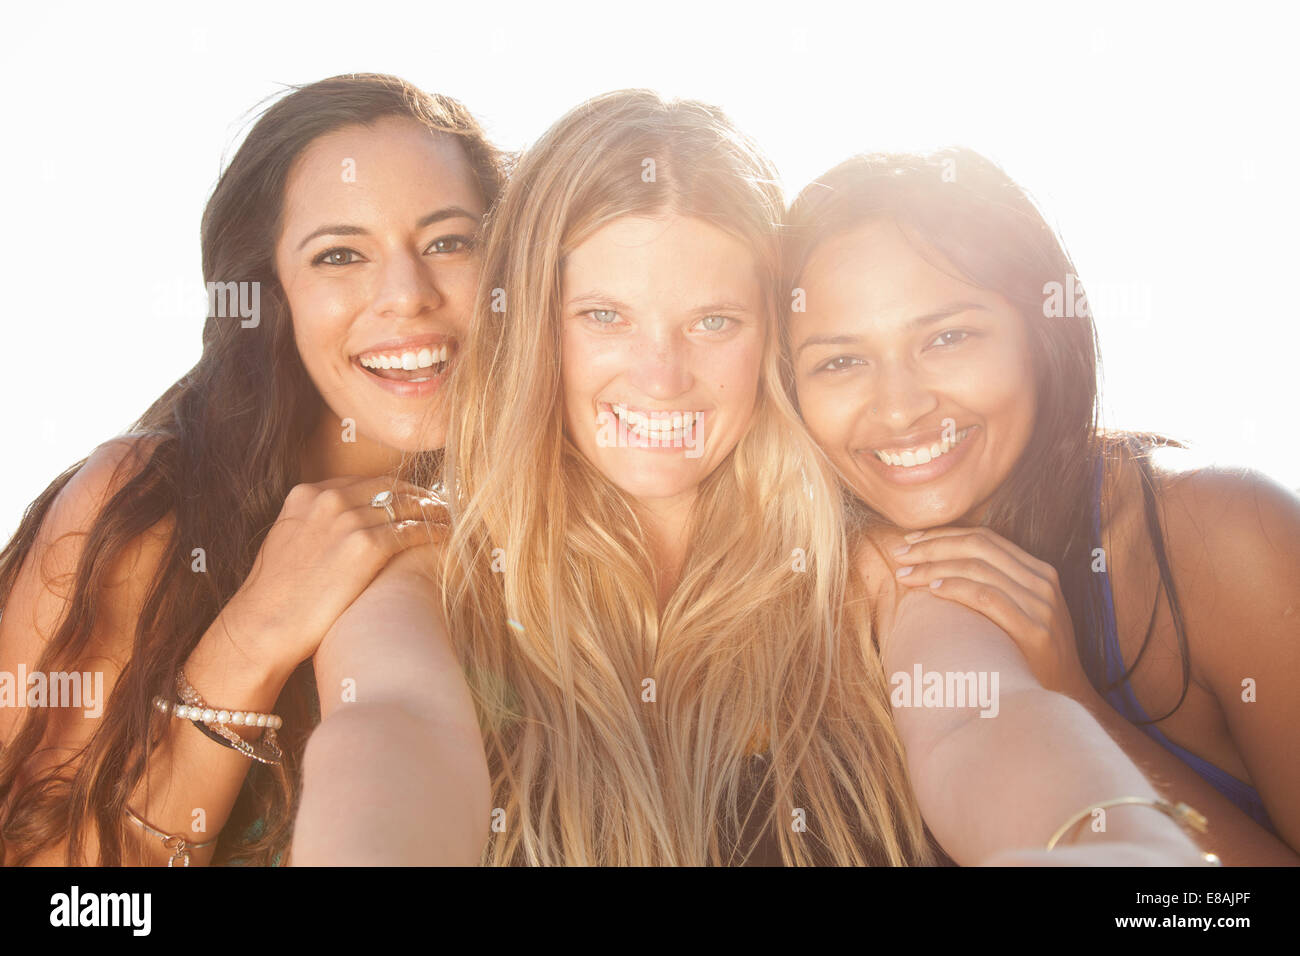 Three smiling young women taking a self portrait - Stock Image